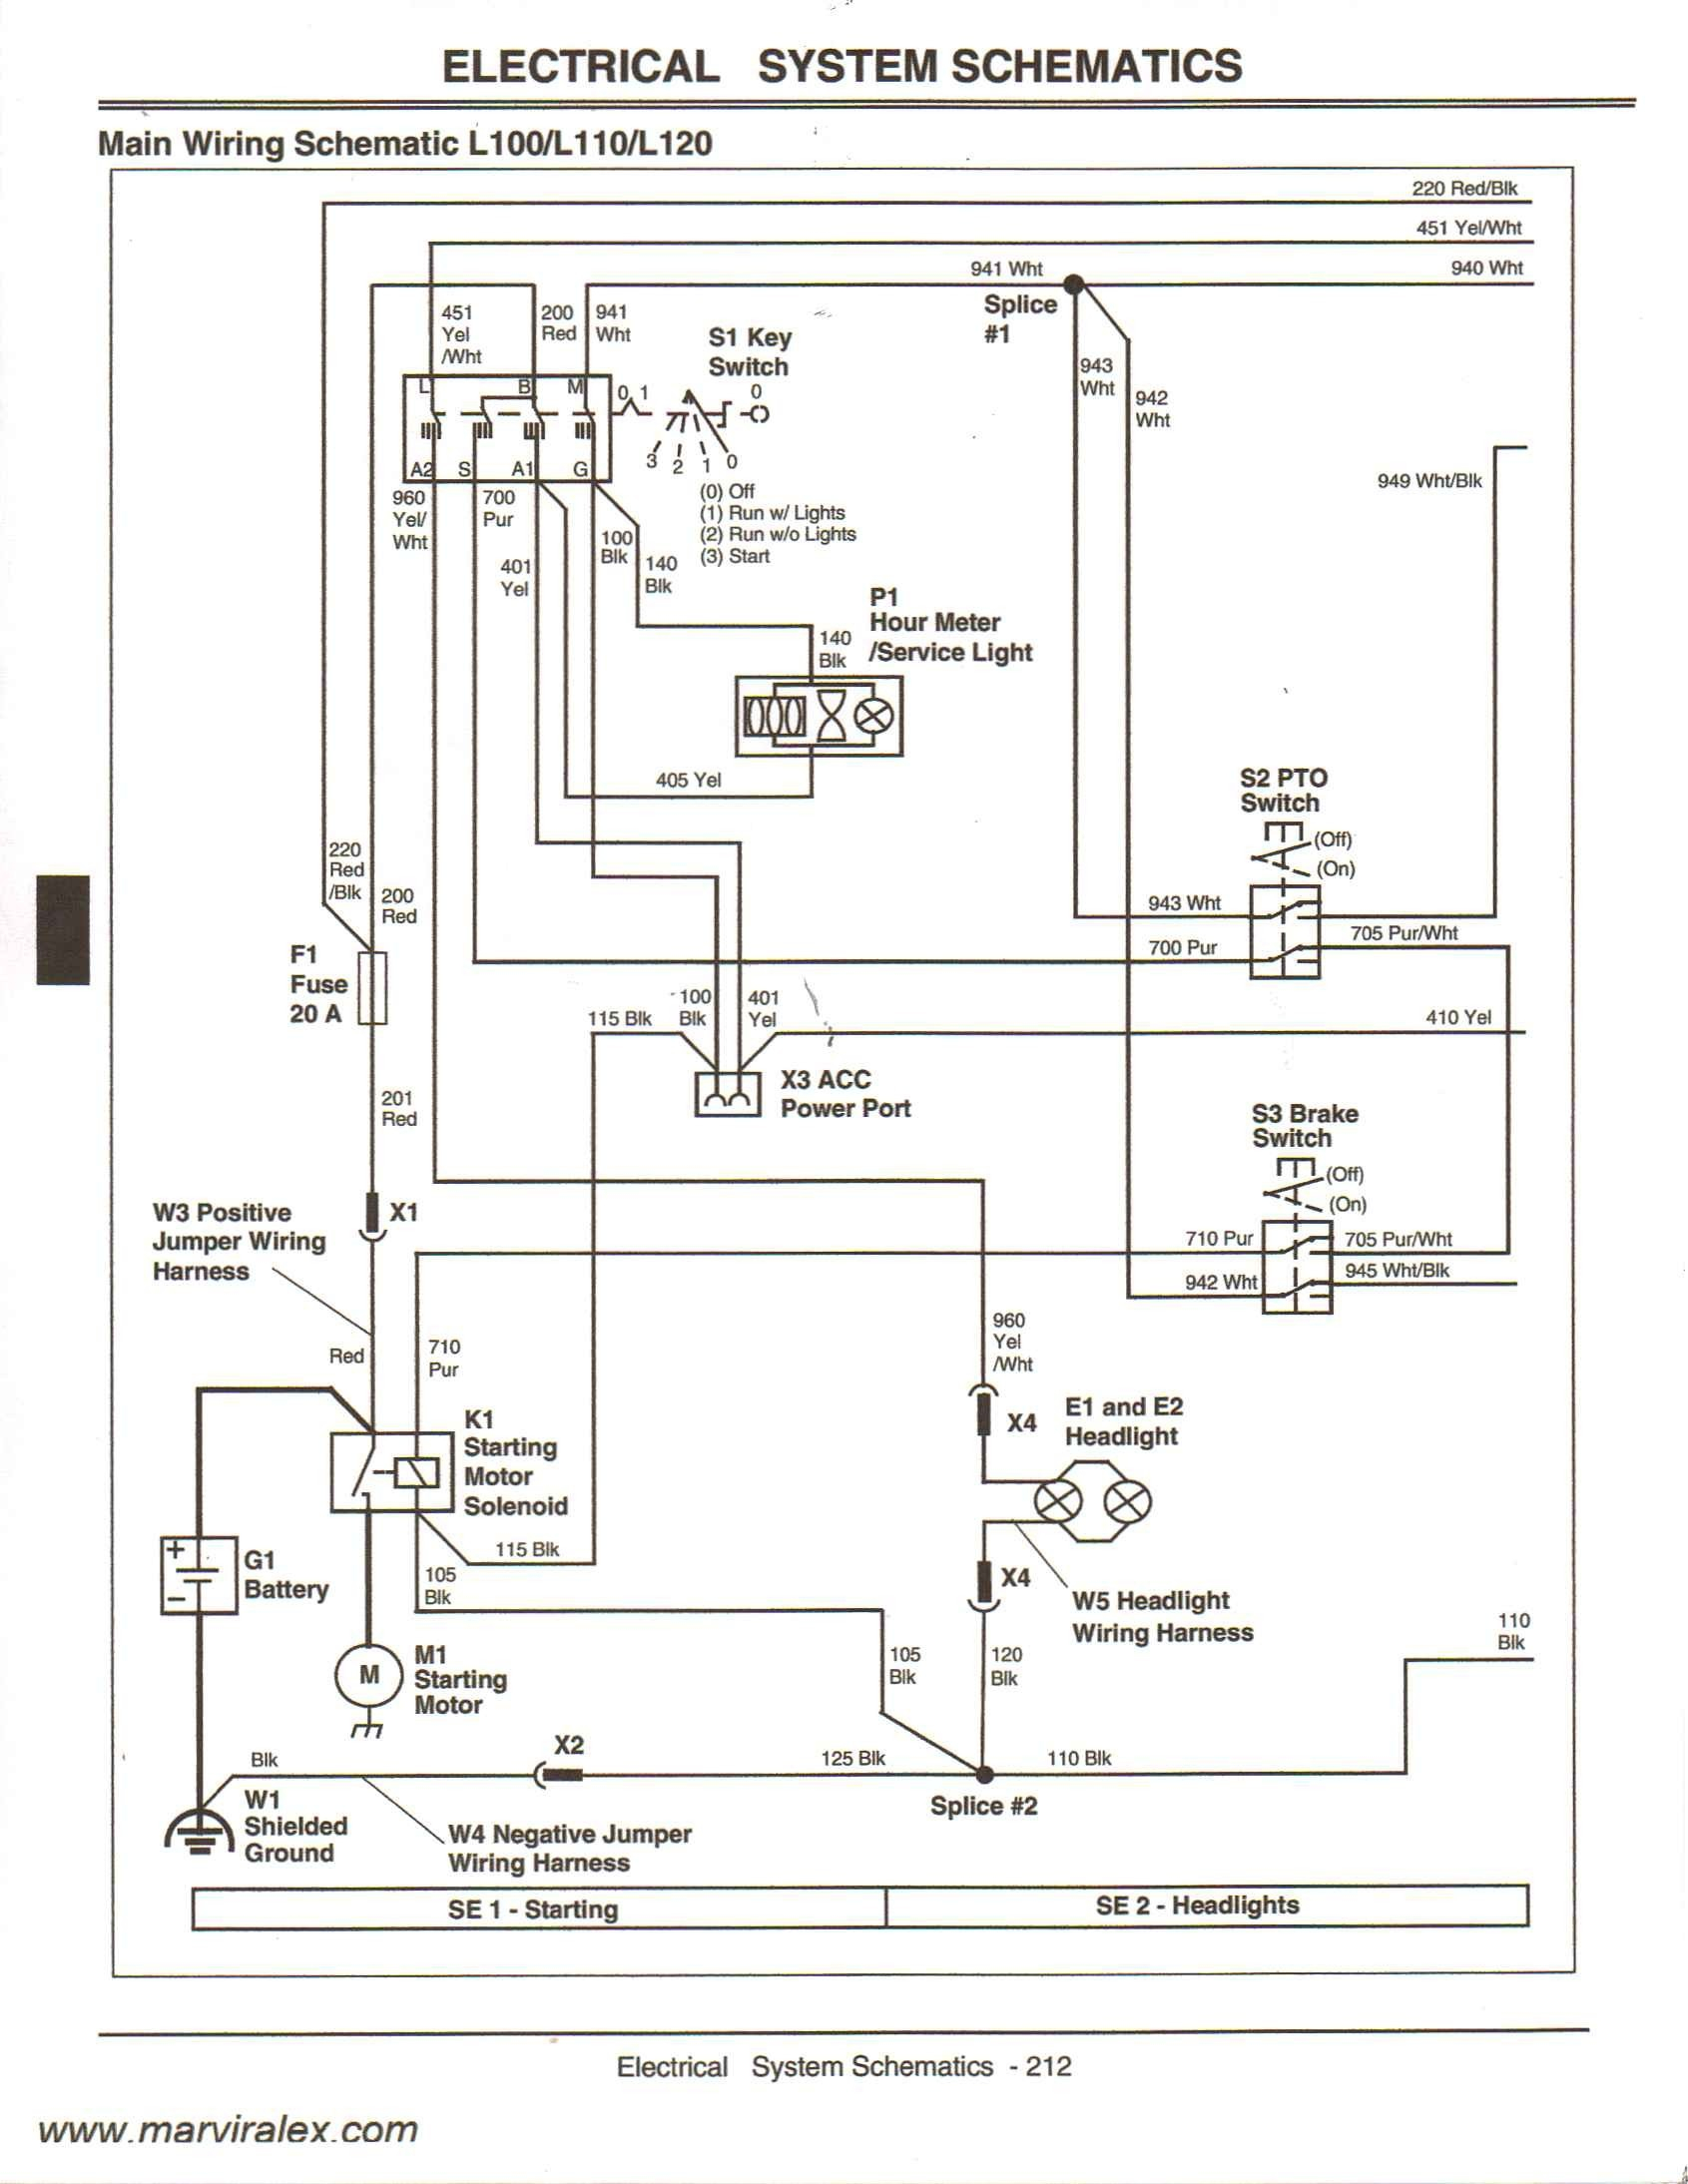 john deere l130 diagram wiring diagrams  john deere l130 mower wiring diagram #4